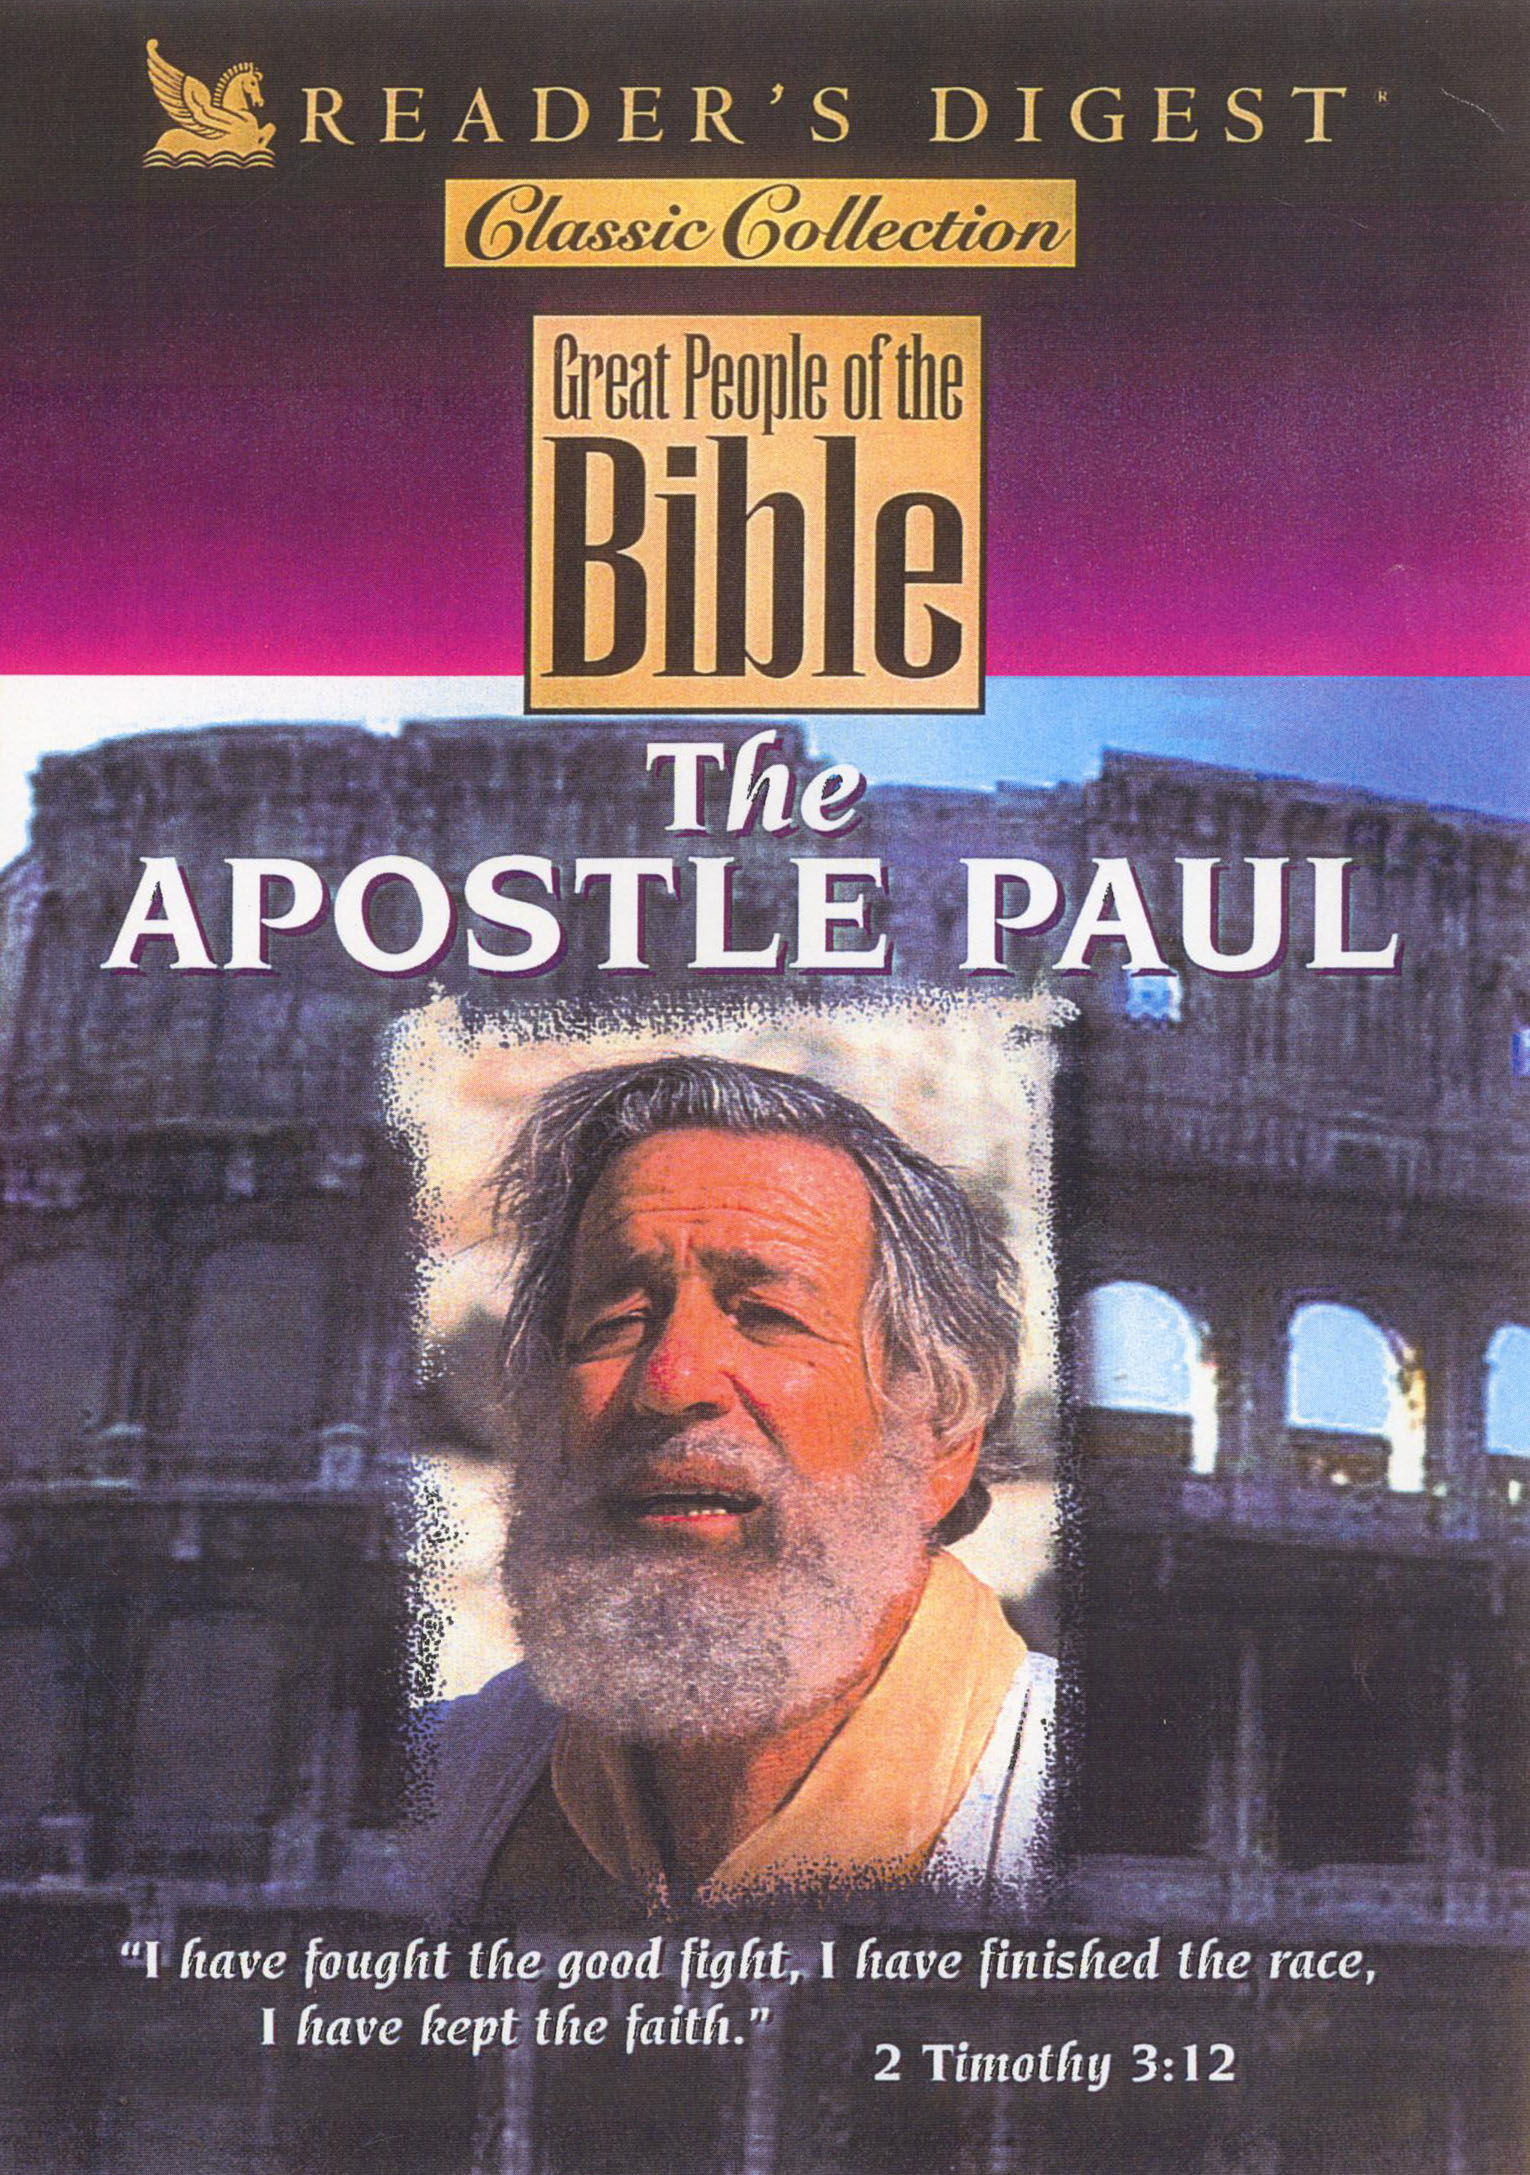 Reader's Digest: Great People of the Bible - The Apostle Paul